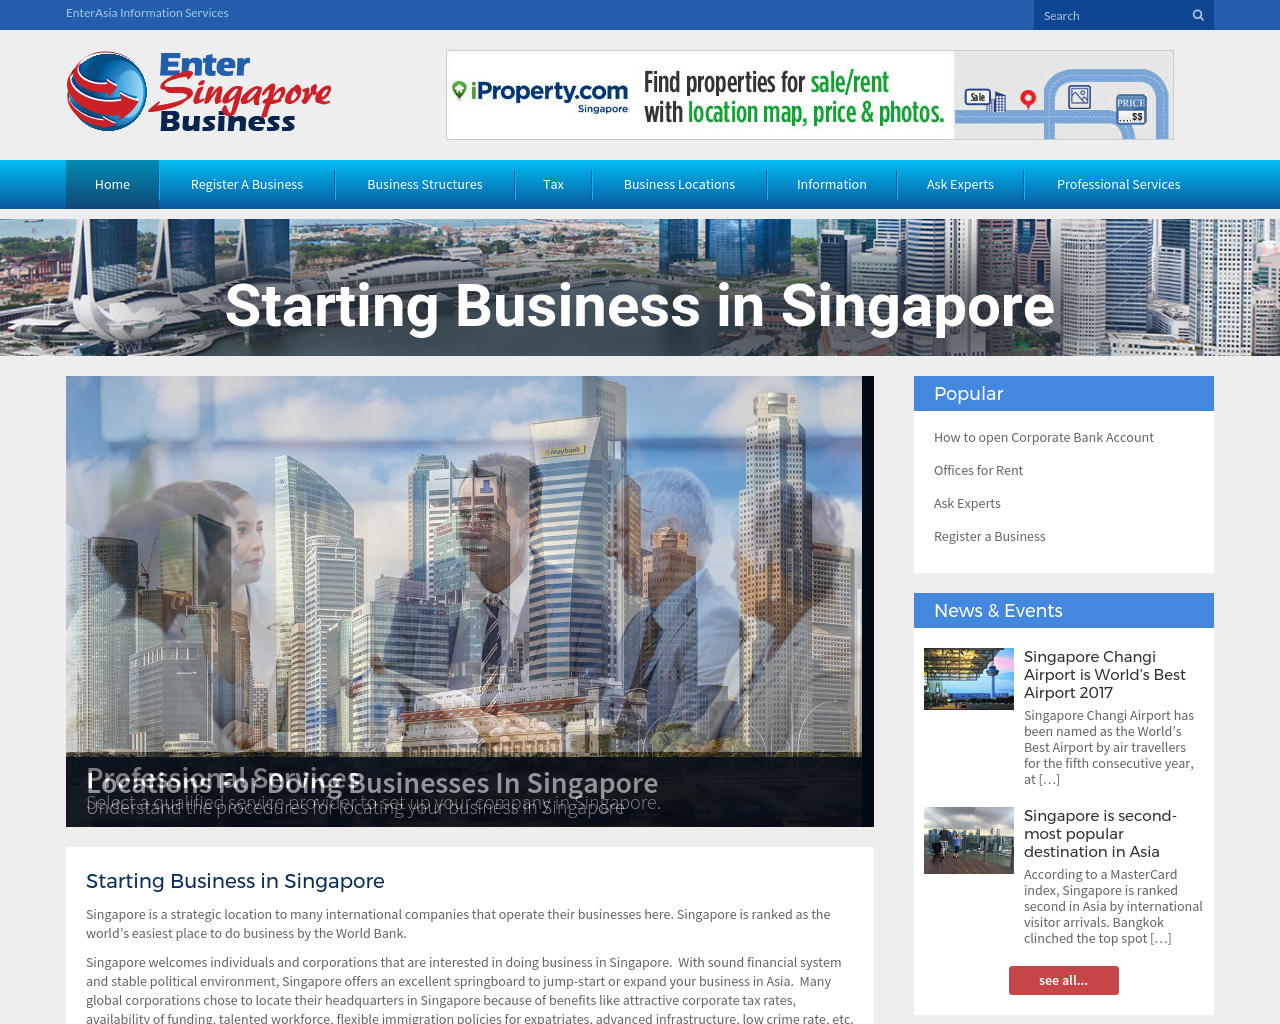 EnterSingapore-Business-Advertising-Reviews-Pricing